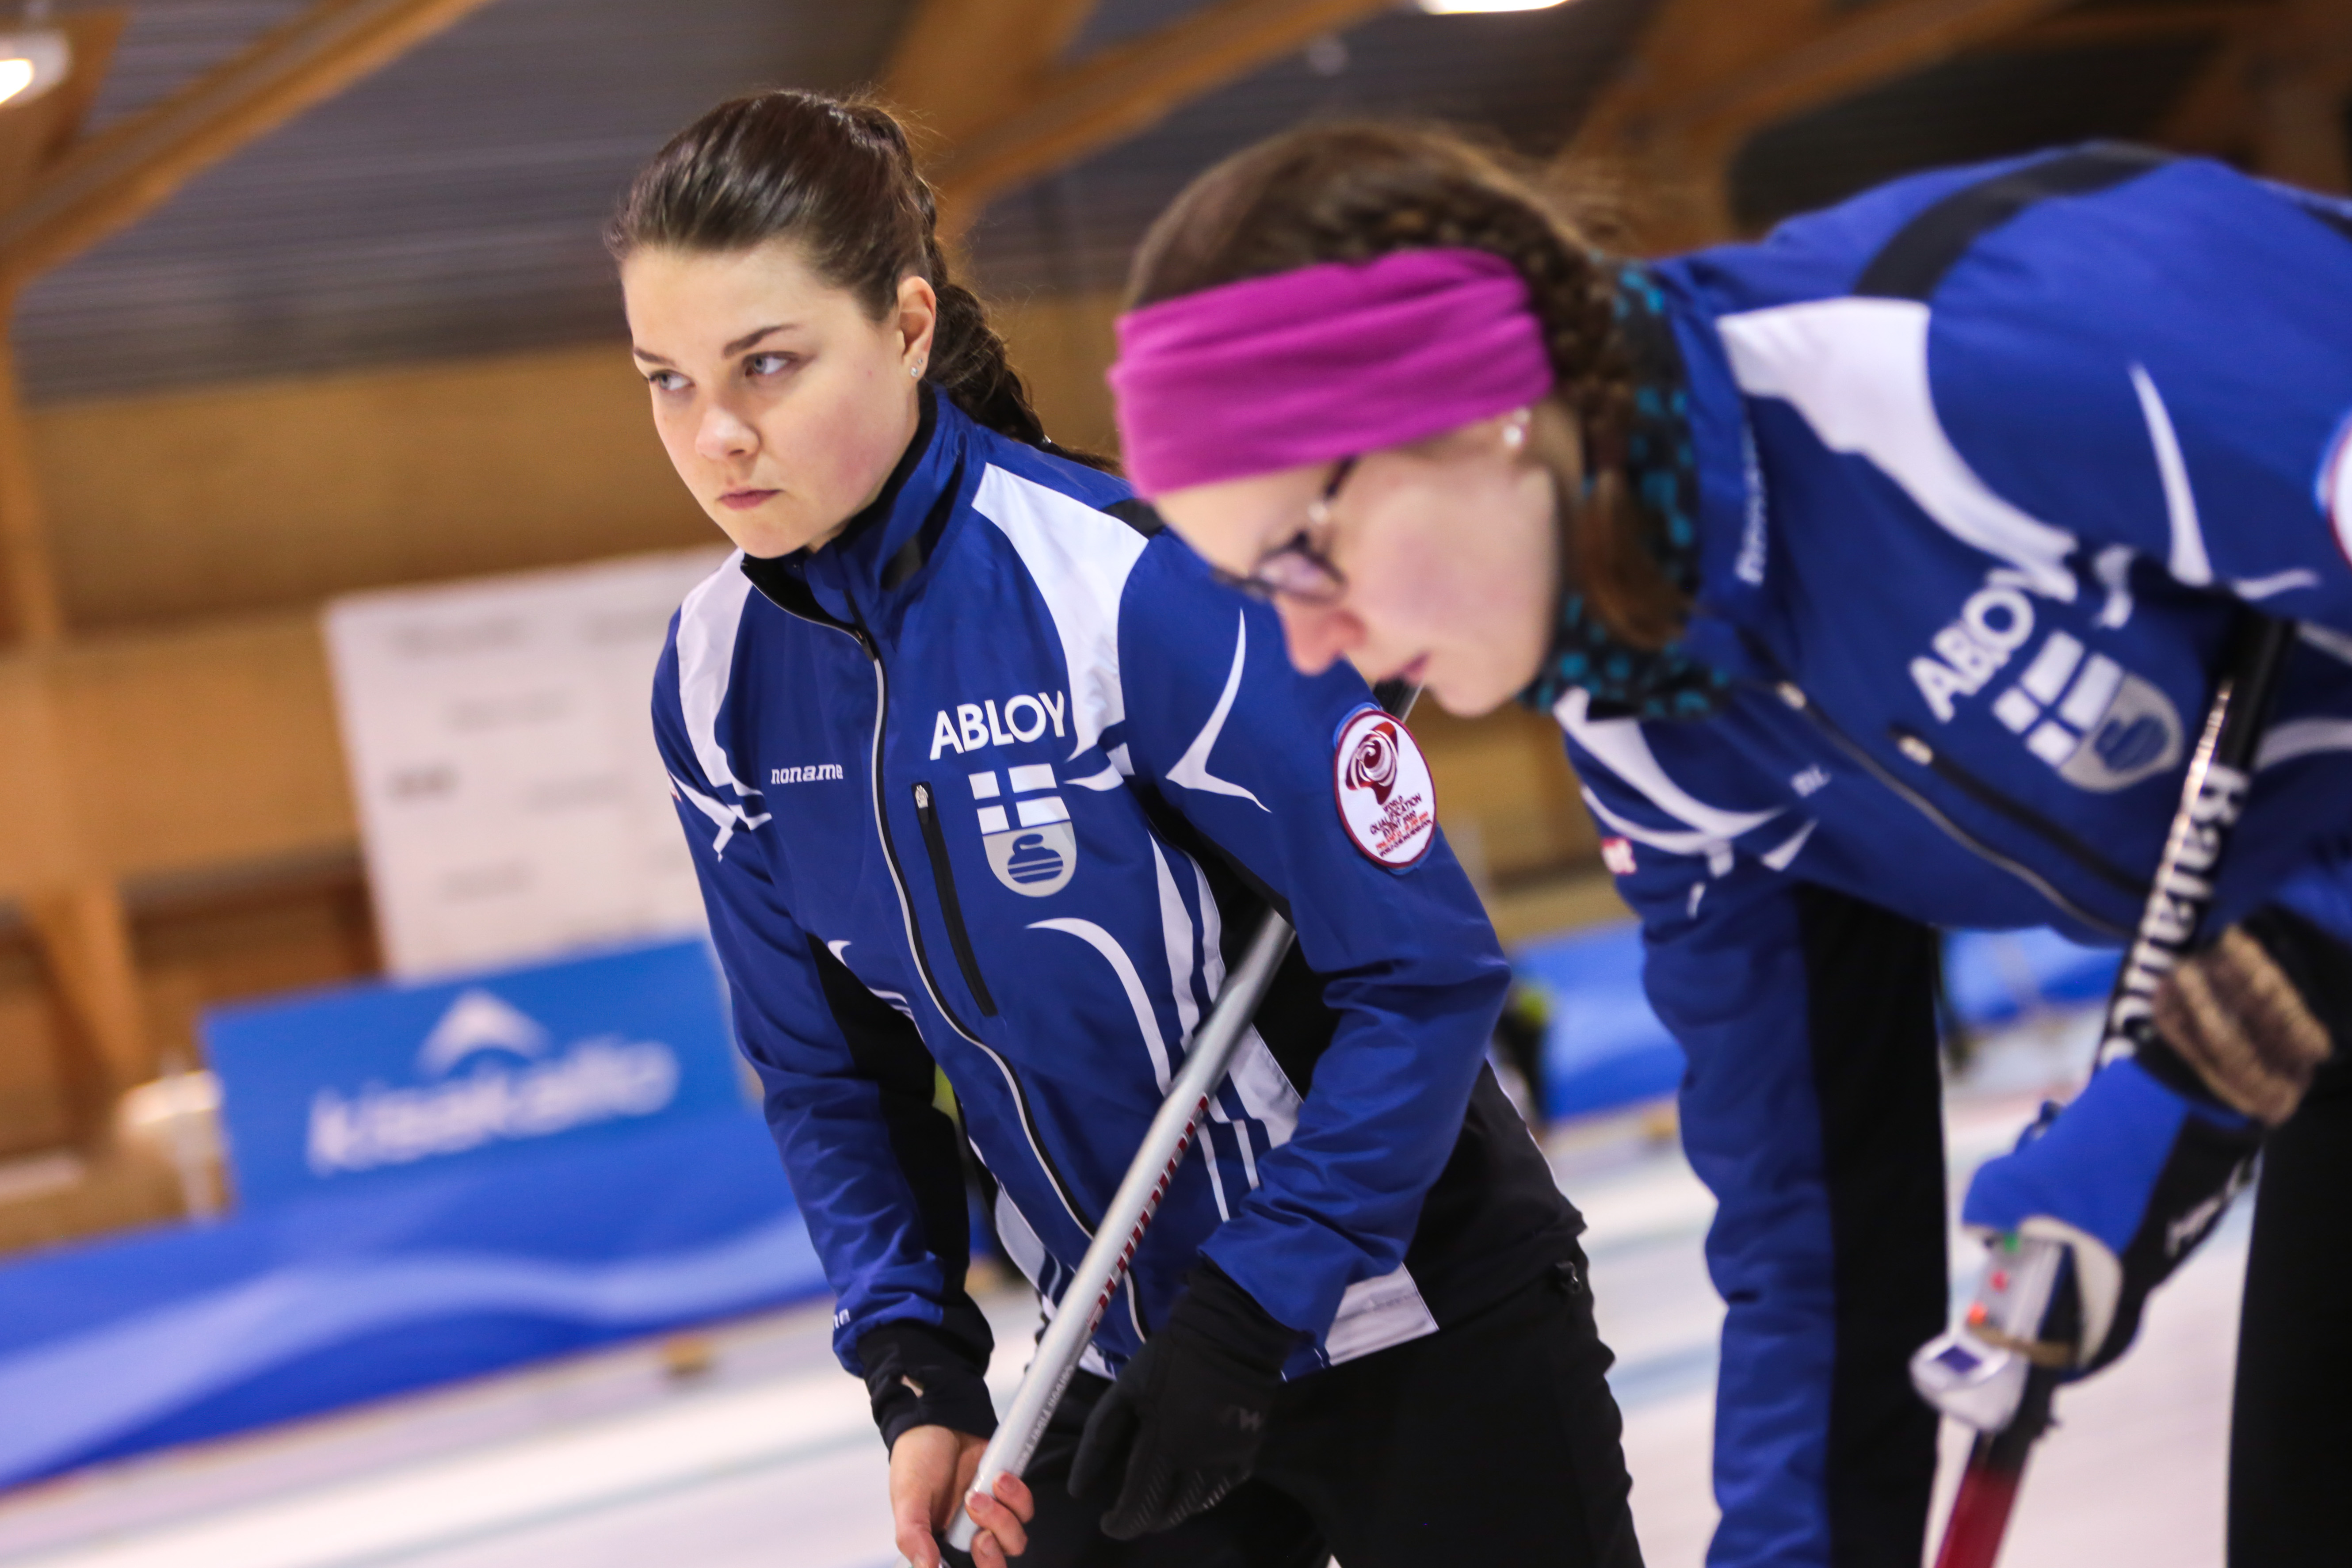 Finnish ladies in action in the 2020 World Qualificion Event (Photo: WCF/Tom Rowland)